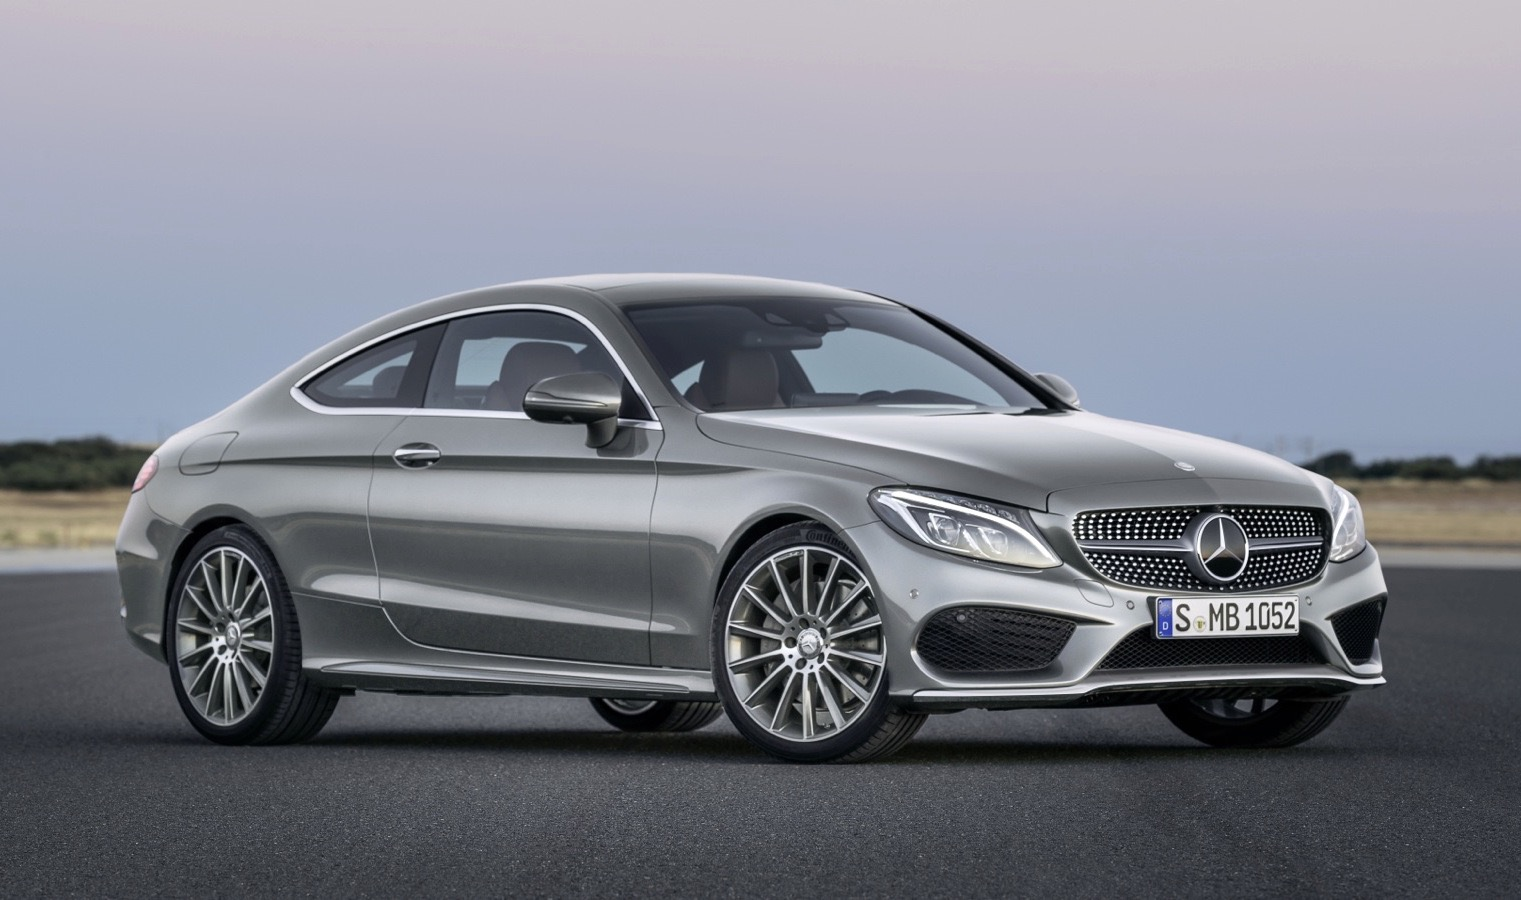 2016 MercedesBenz CClass Coupe revealed; lighter, larger